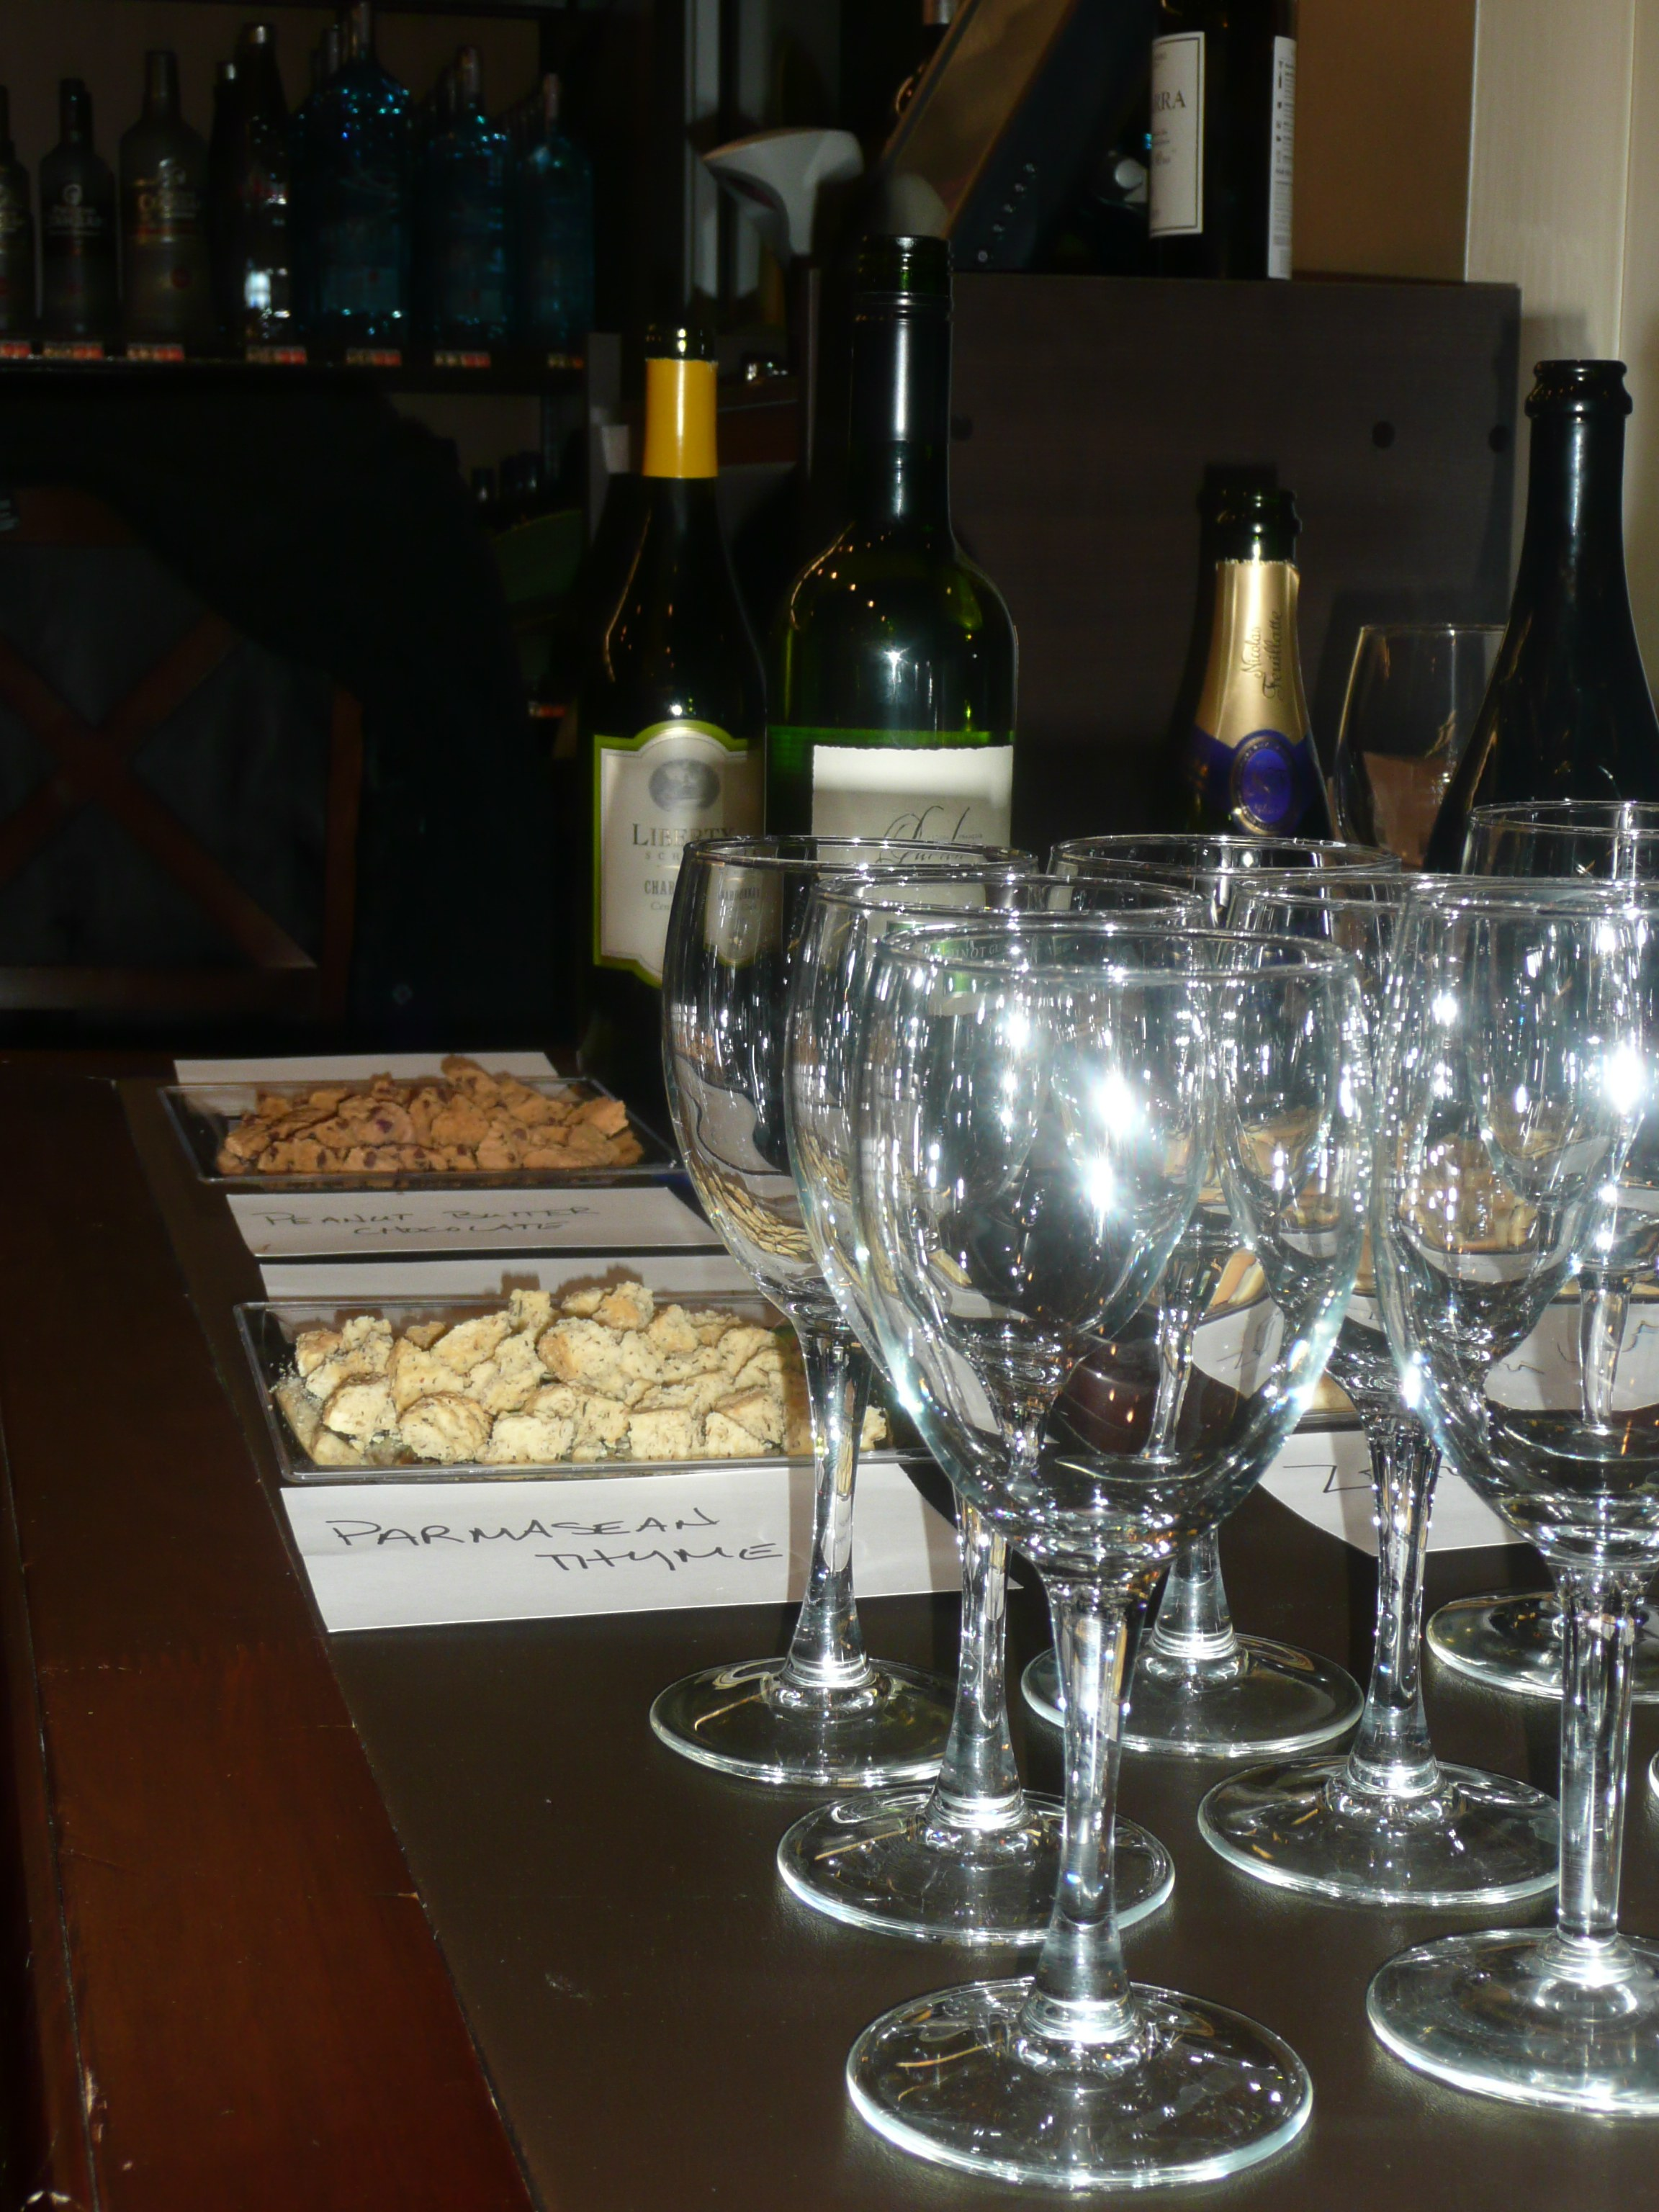 COOKIES & CORKS: ADVENTURES IN WINE PAIRING